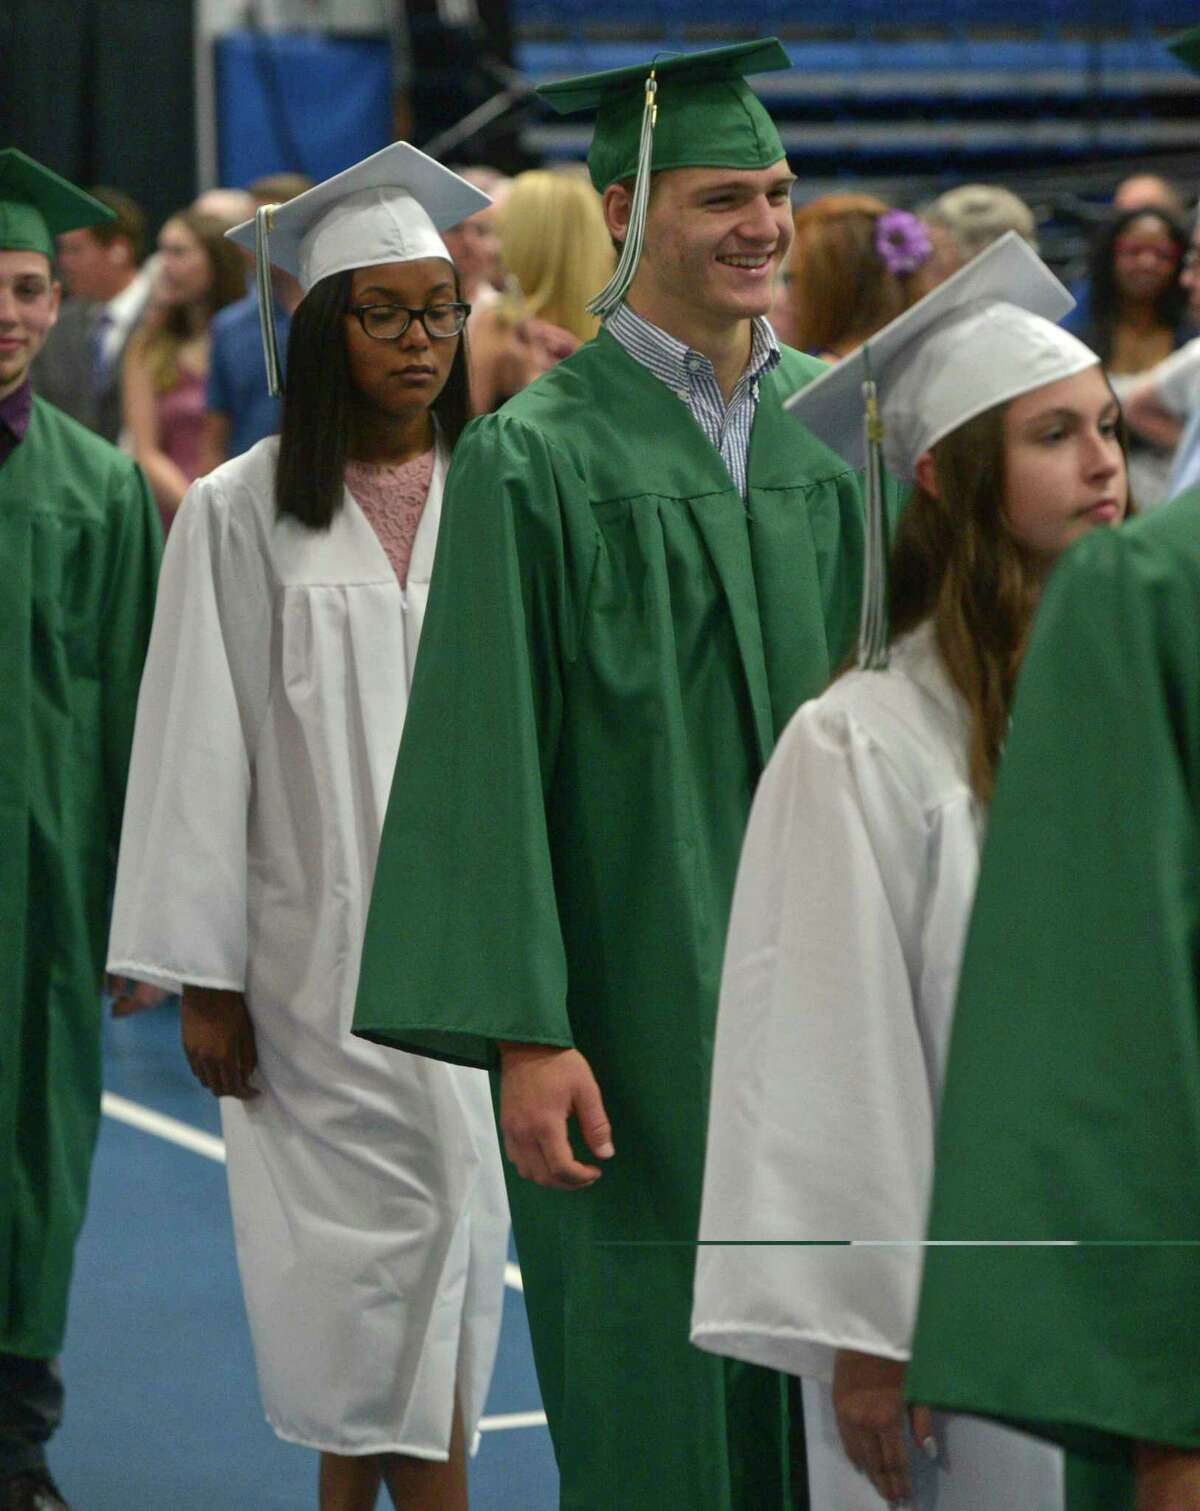 The New Milford High School Class of 2019 Commencement, Saturday, June 22, 2019, at the O'Neill Center, Western Connecticut State University, Danbury, Conn.